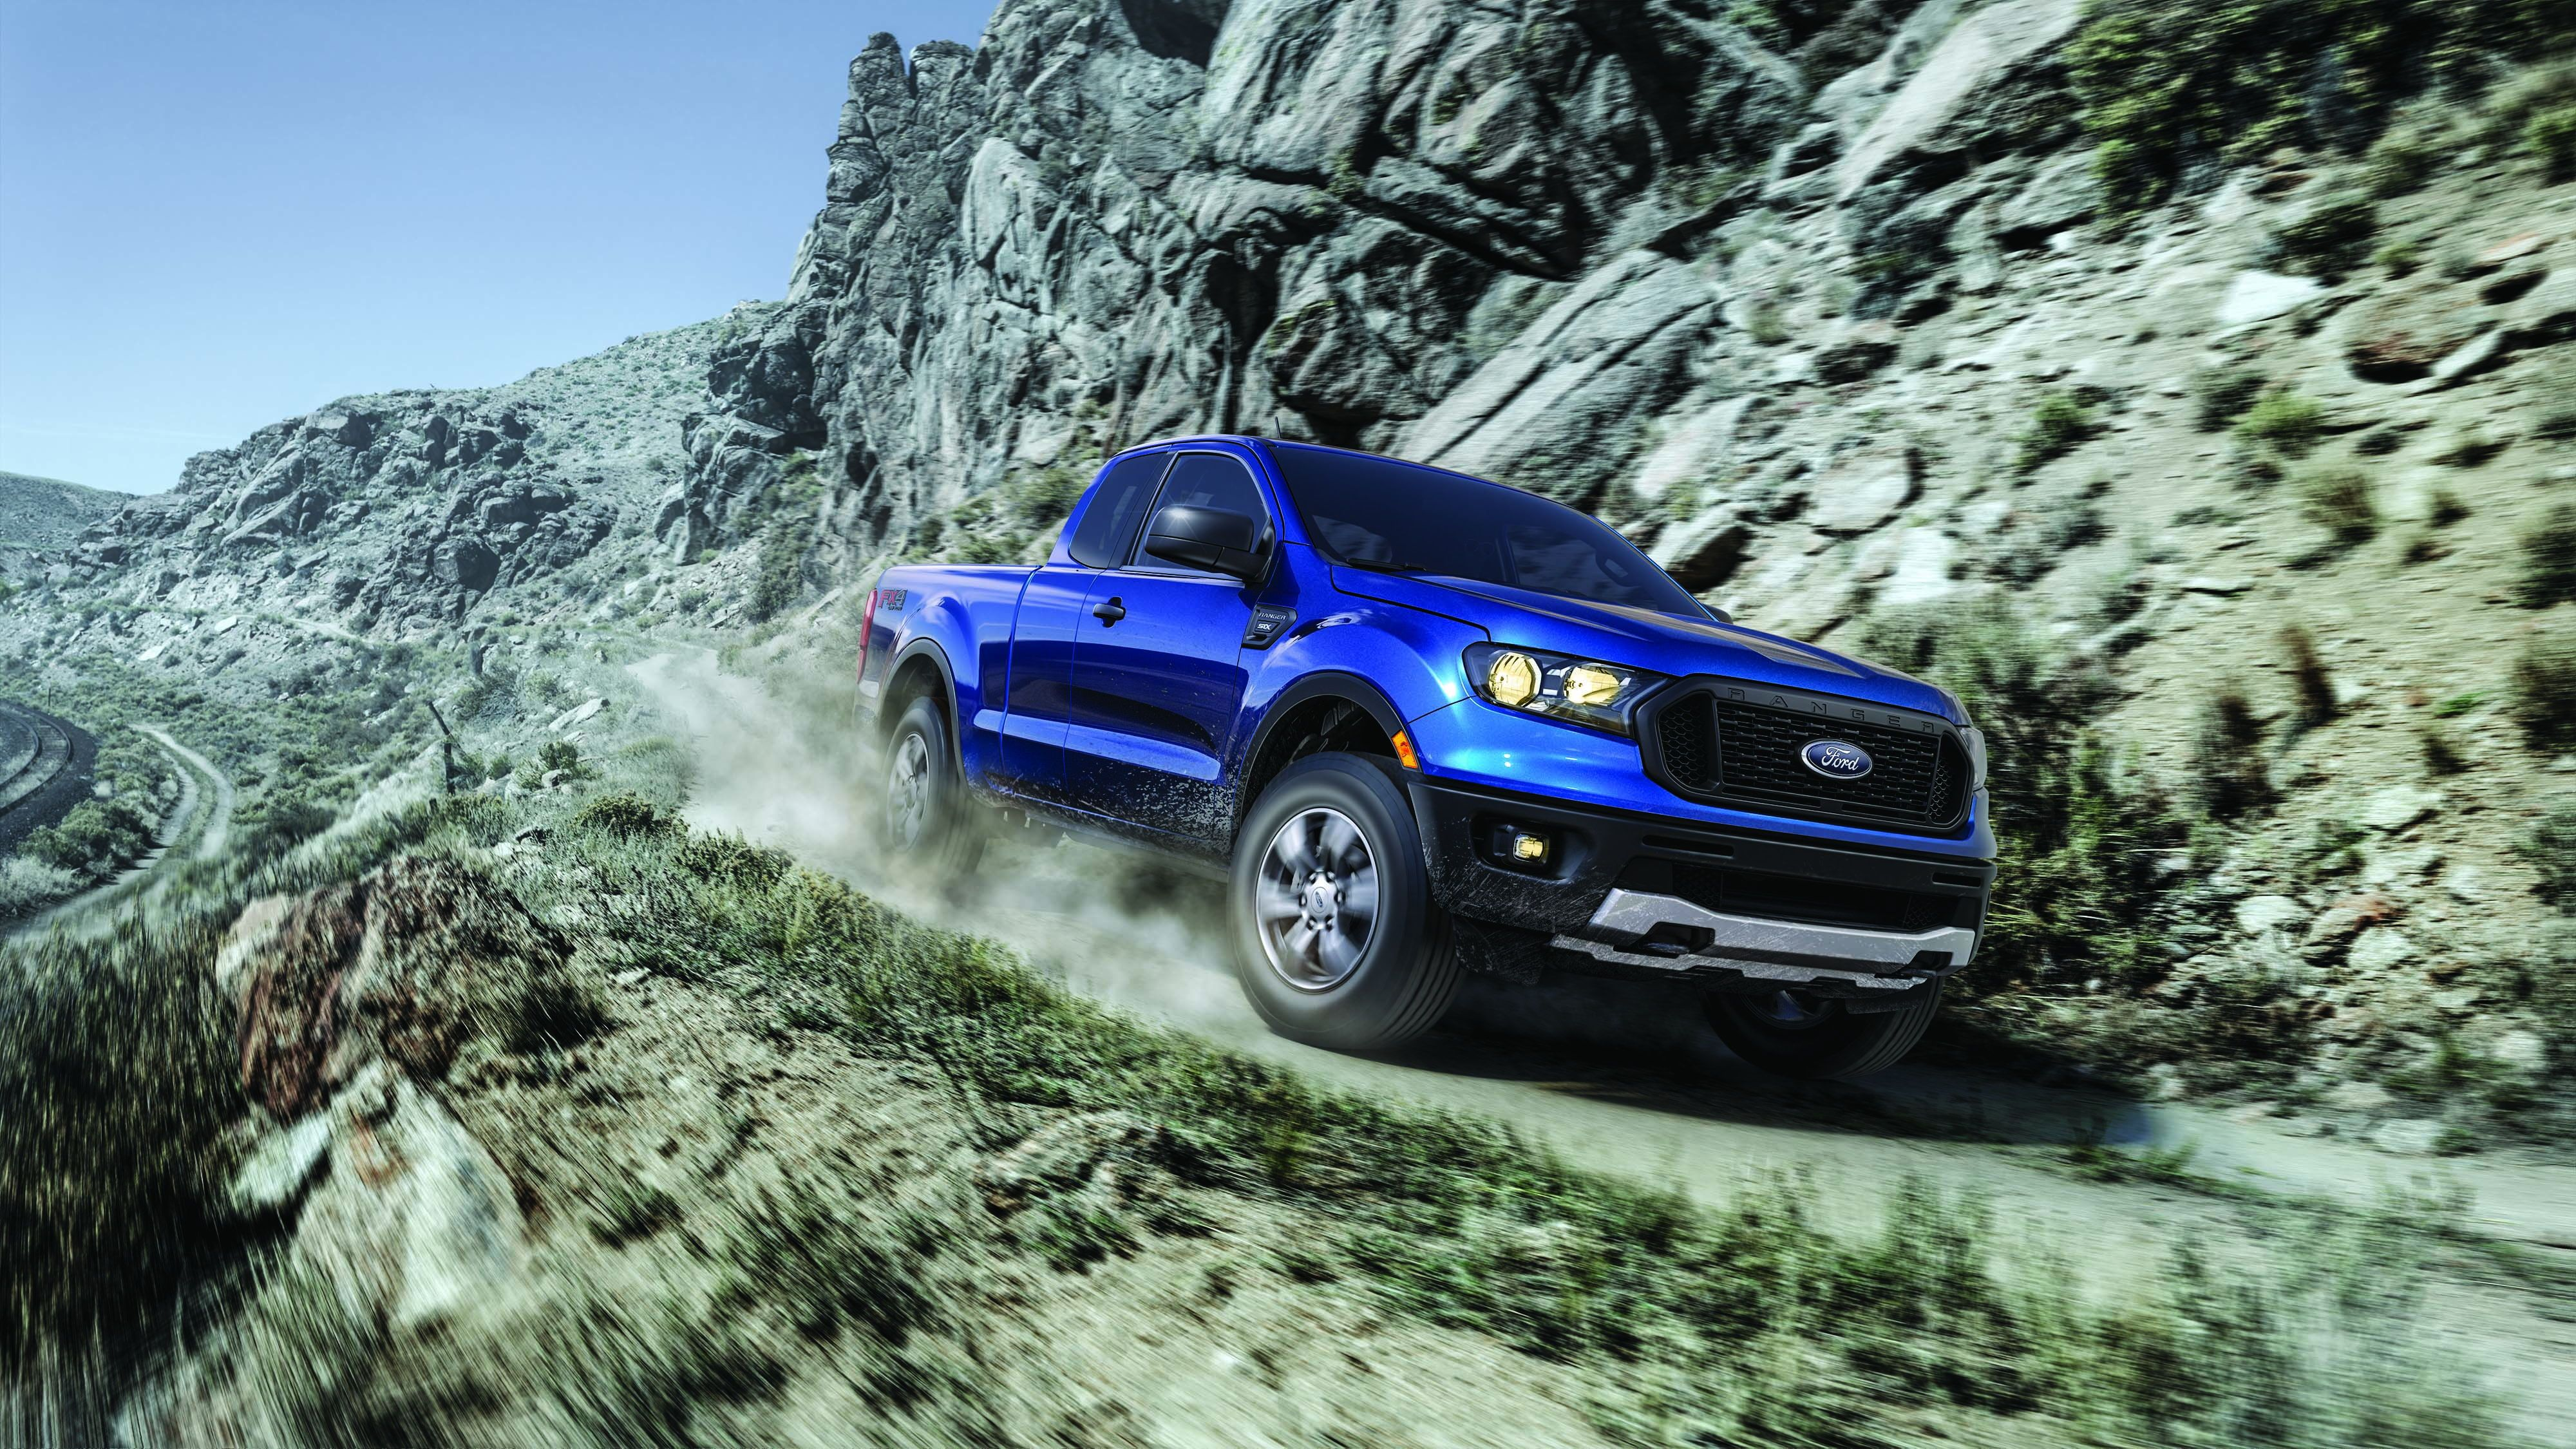 2019 Ford Ranger Coming Soon To Hacienda Ford Be Sure To Keep Up